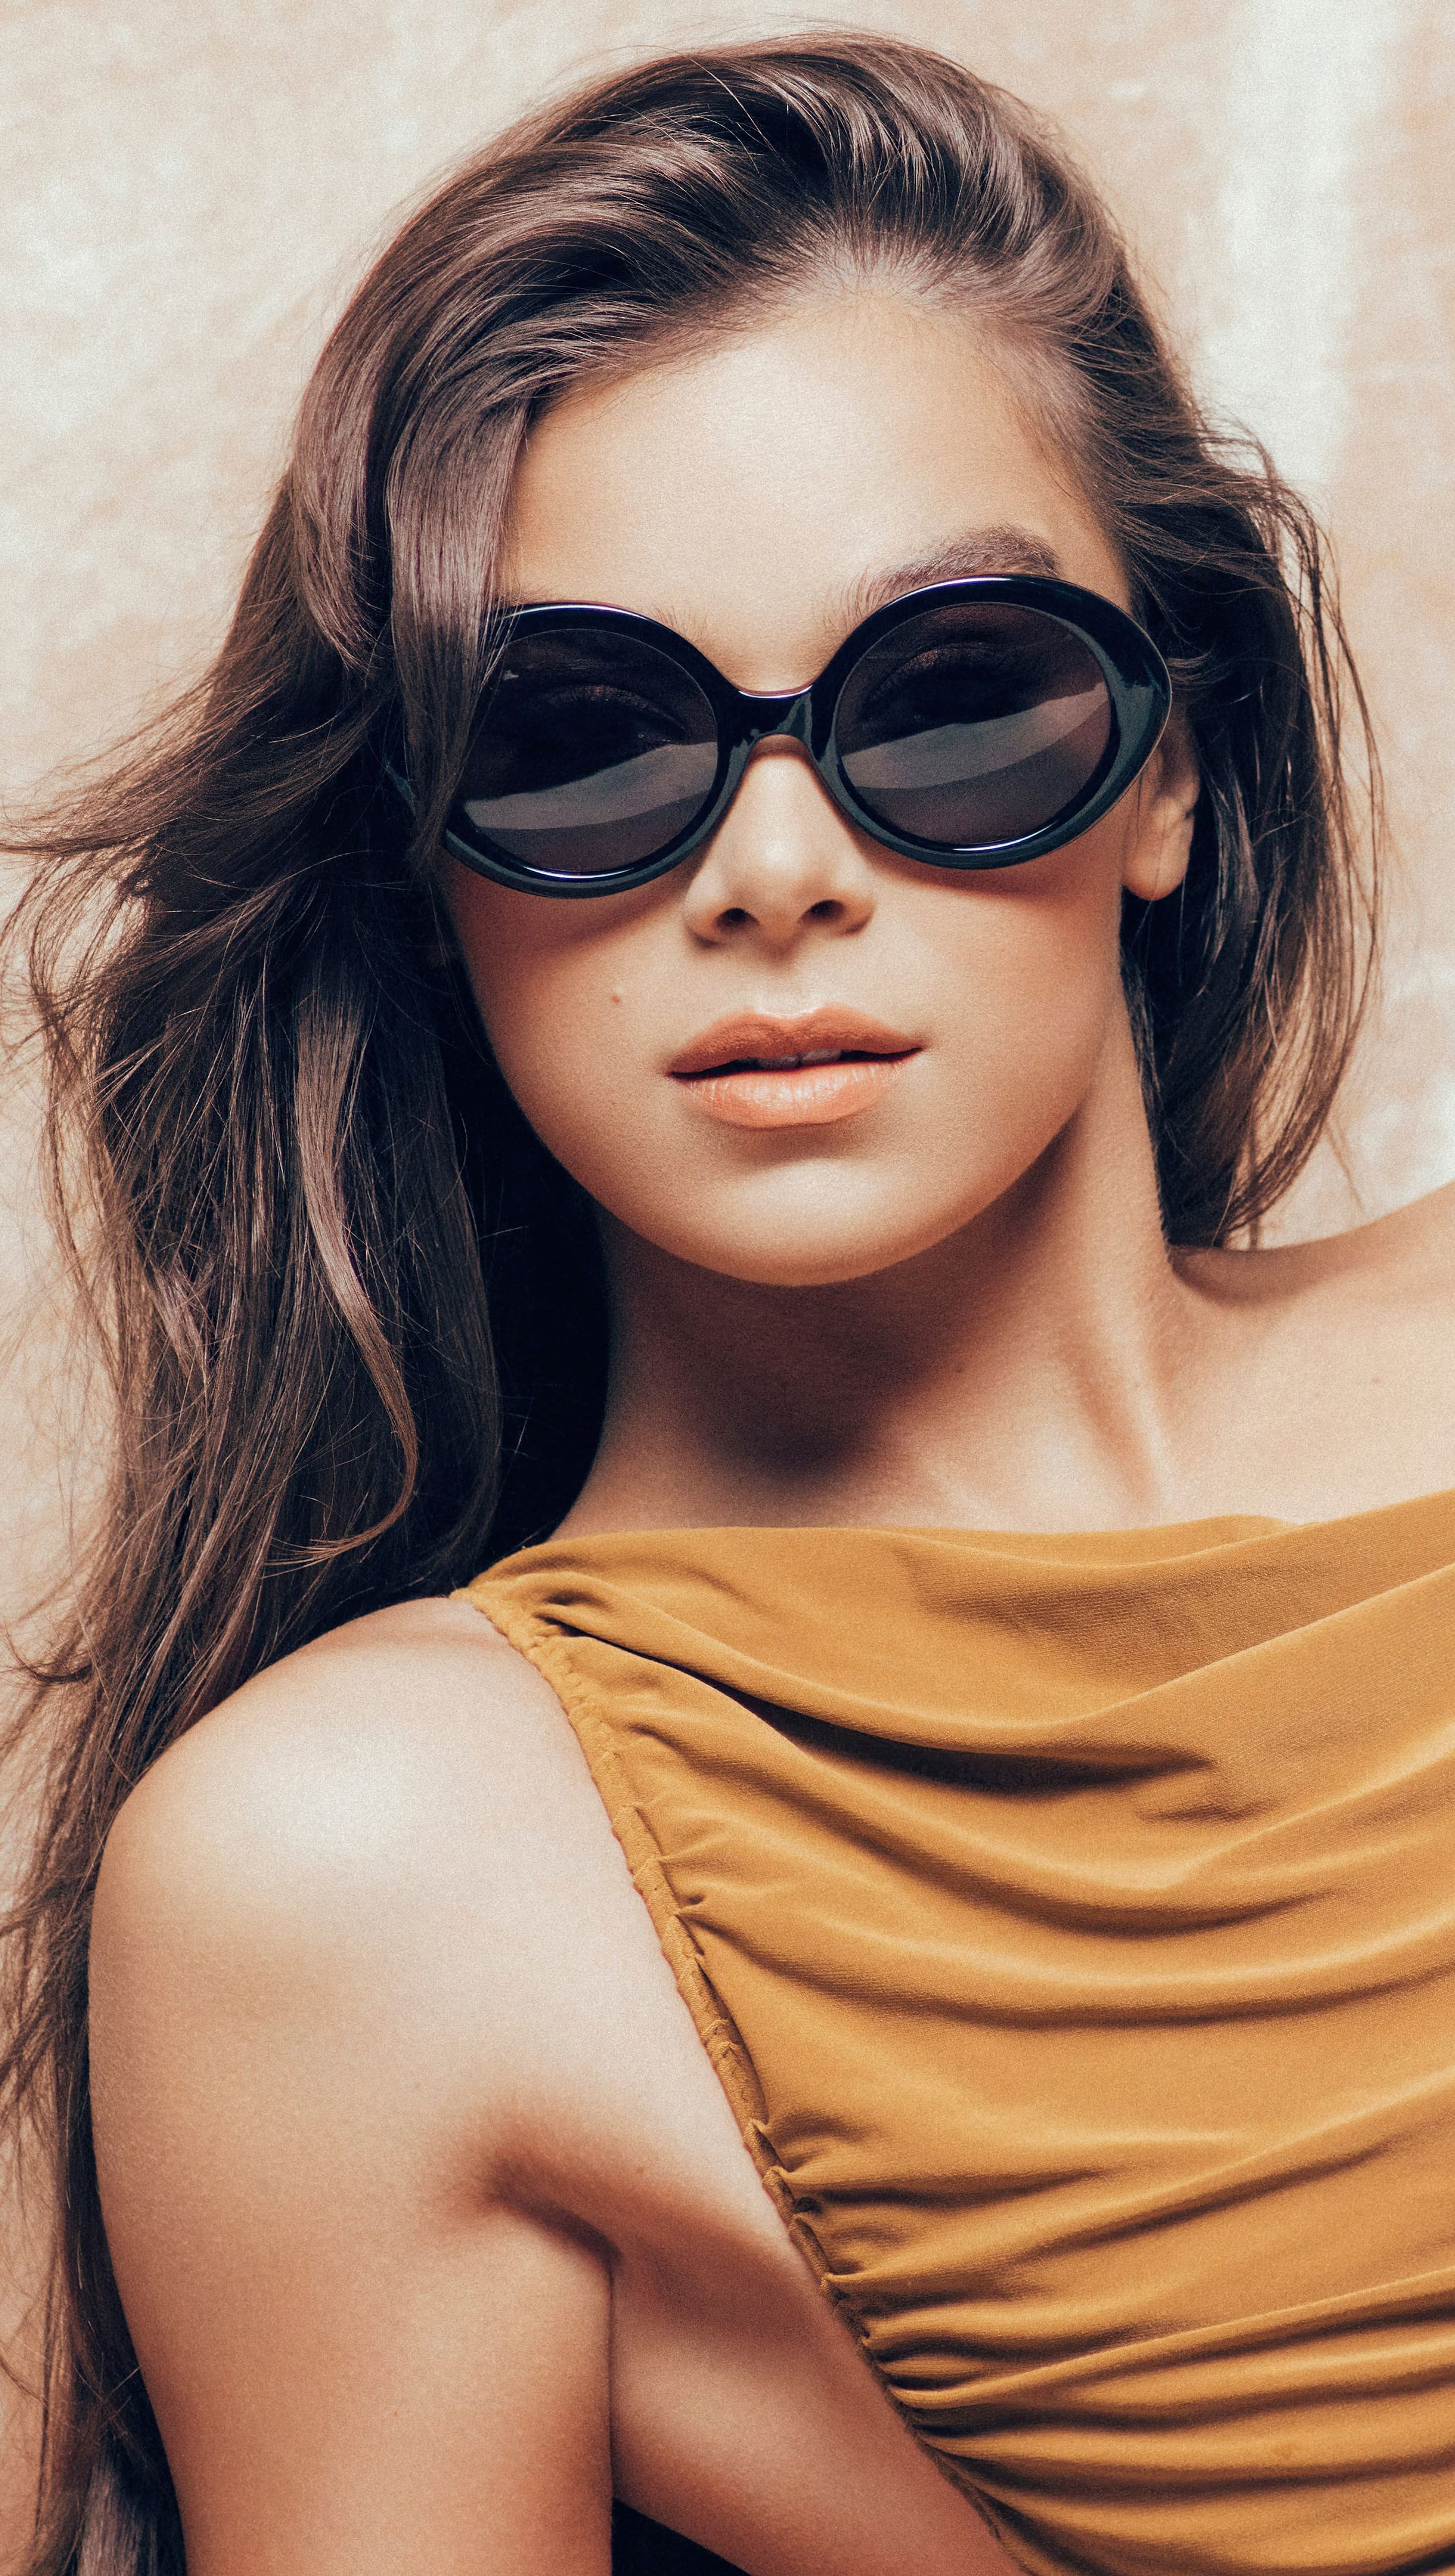 Wallpaper Hailee Steinfeld with sunglasses Vertical